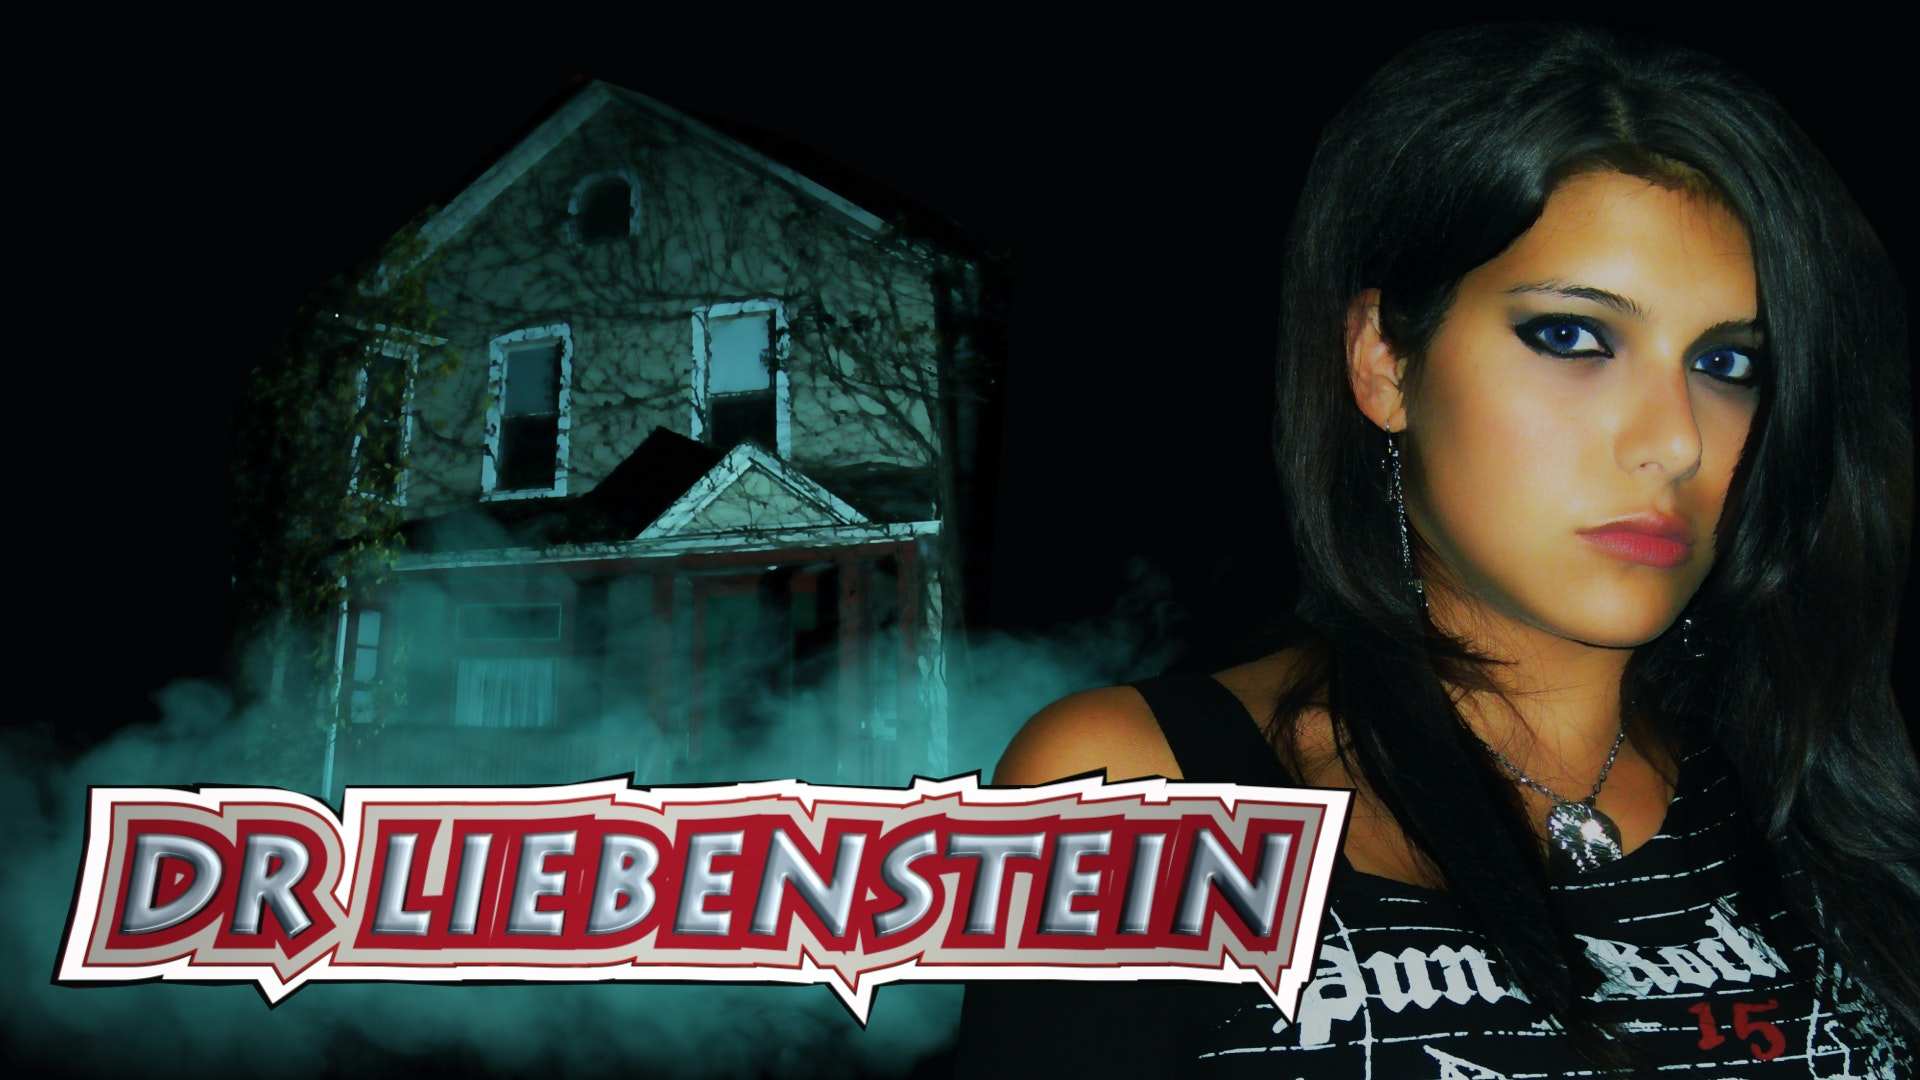 Dr Liebenstein - Vampire Movie (Rental)